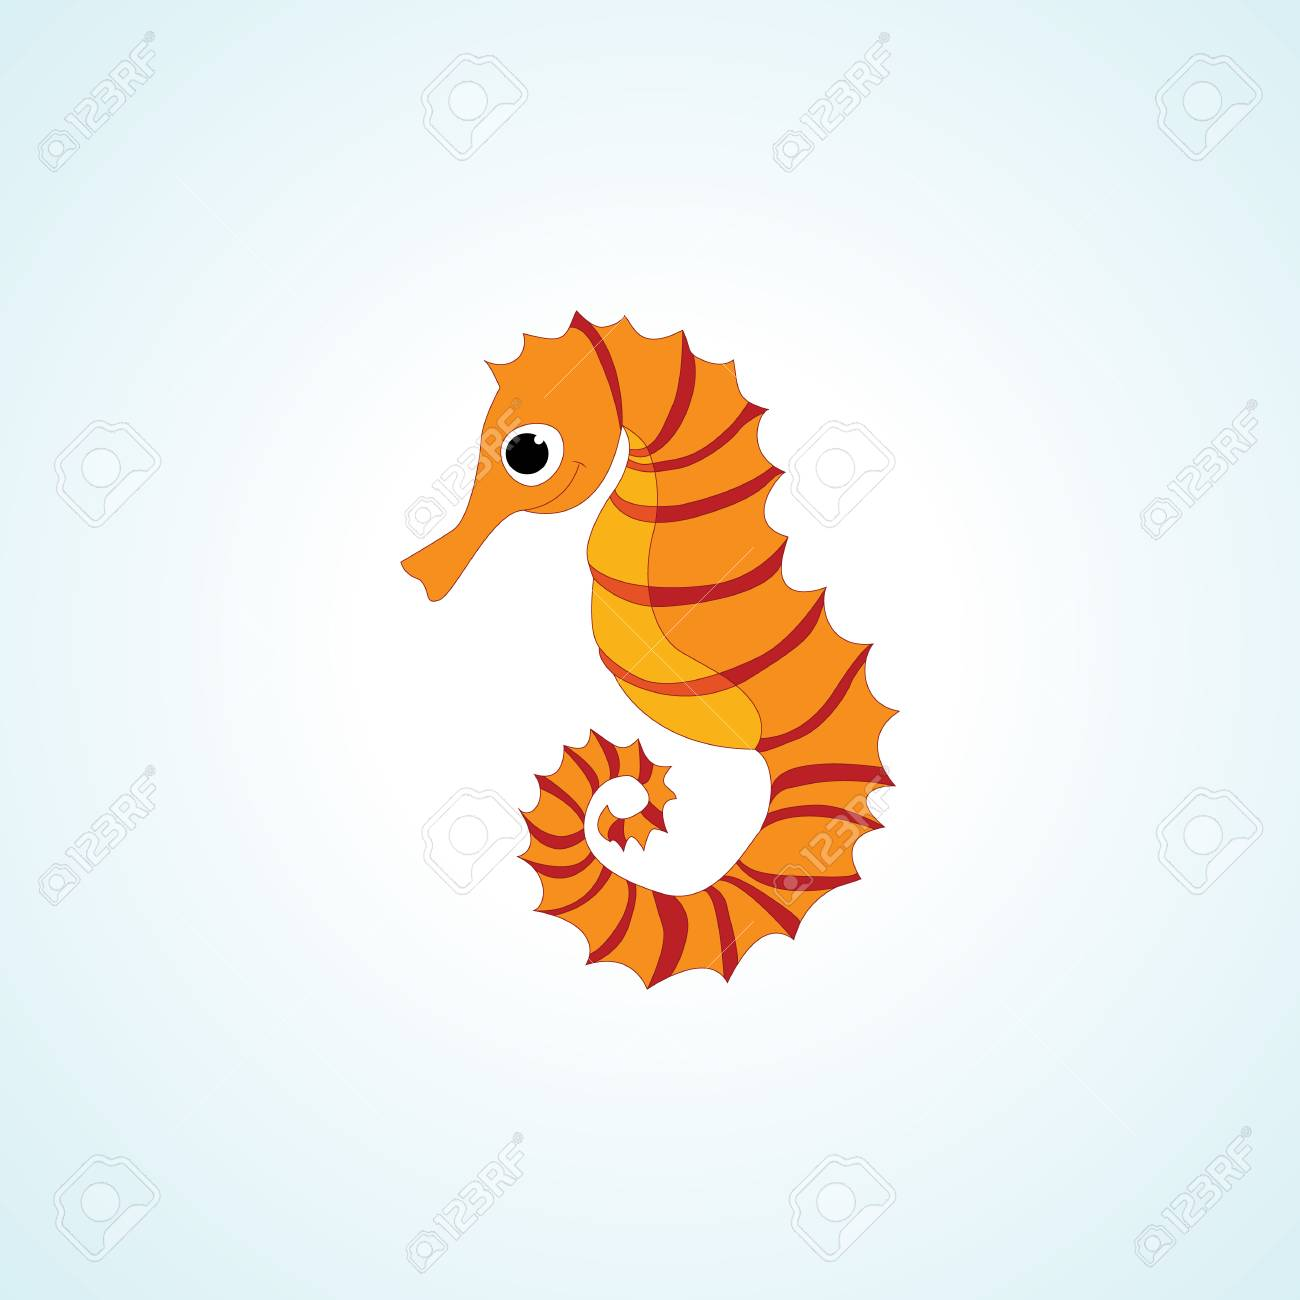 Cute Seahorse Isolated Vector Drawing Cartoon Style Royalty Free Cliparts Vectors And Stock Illustration Image 78757809